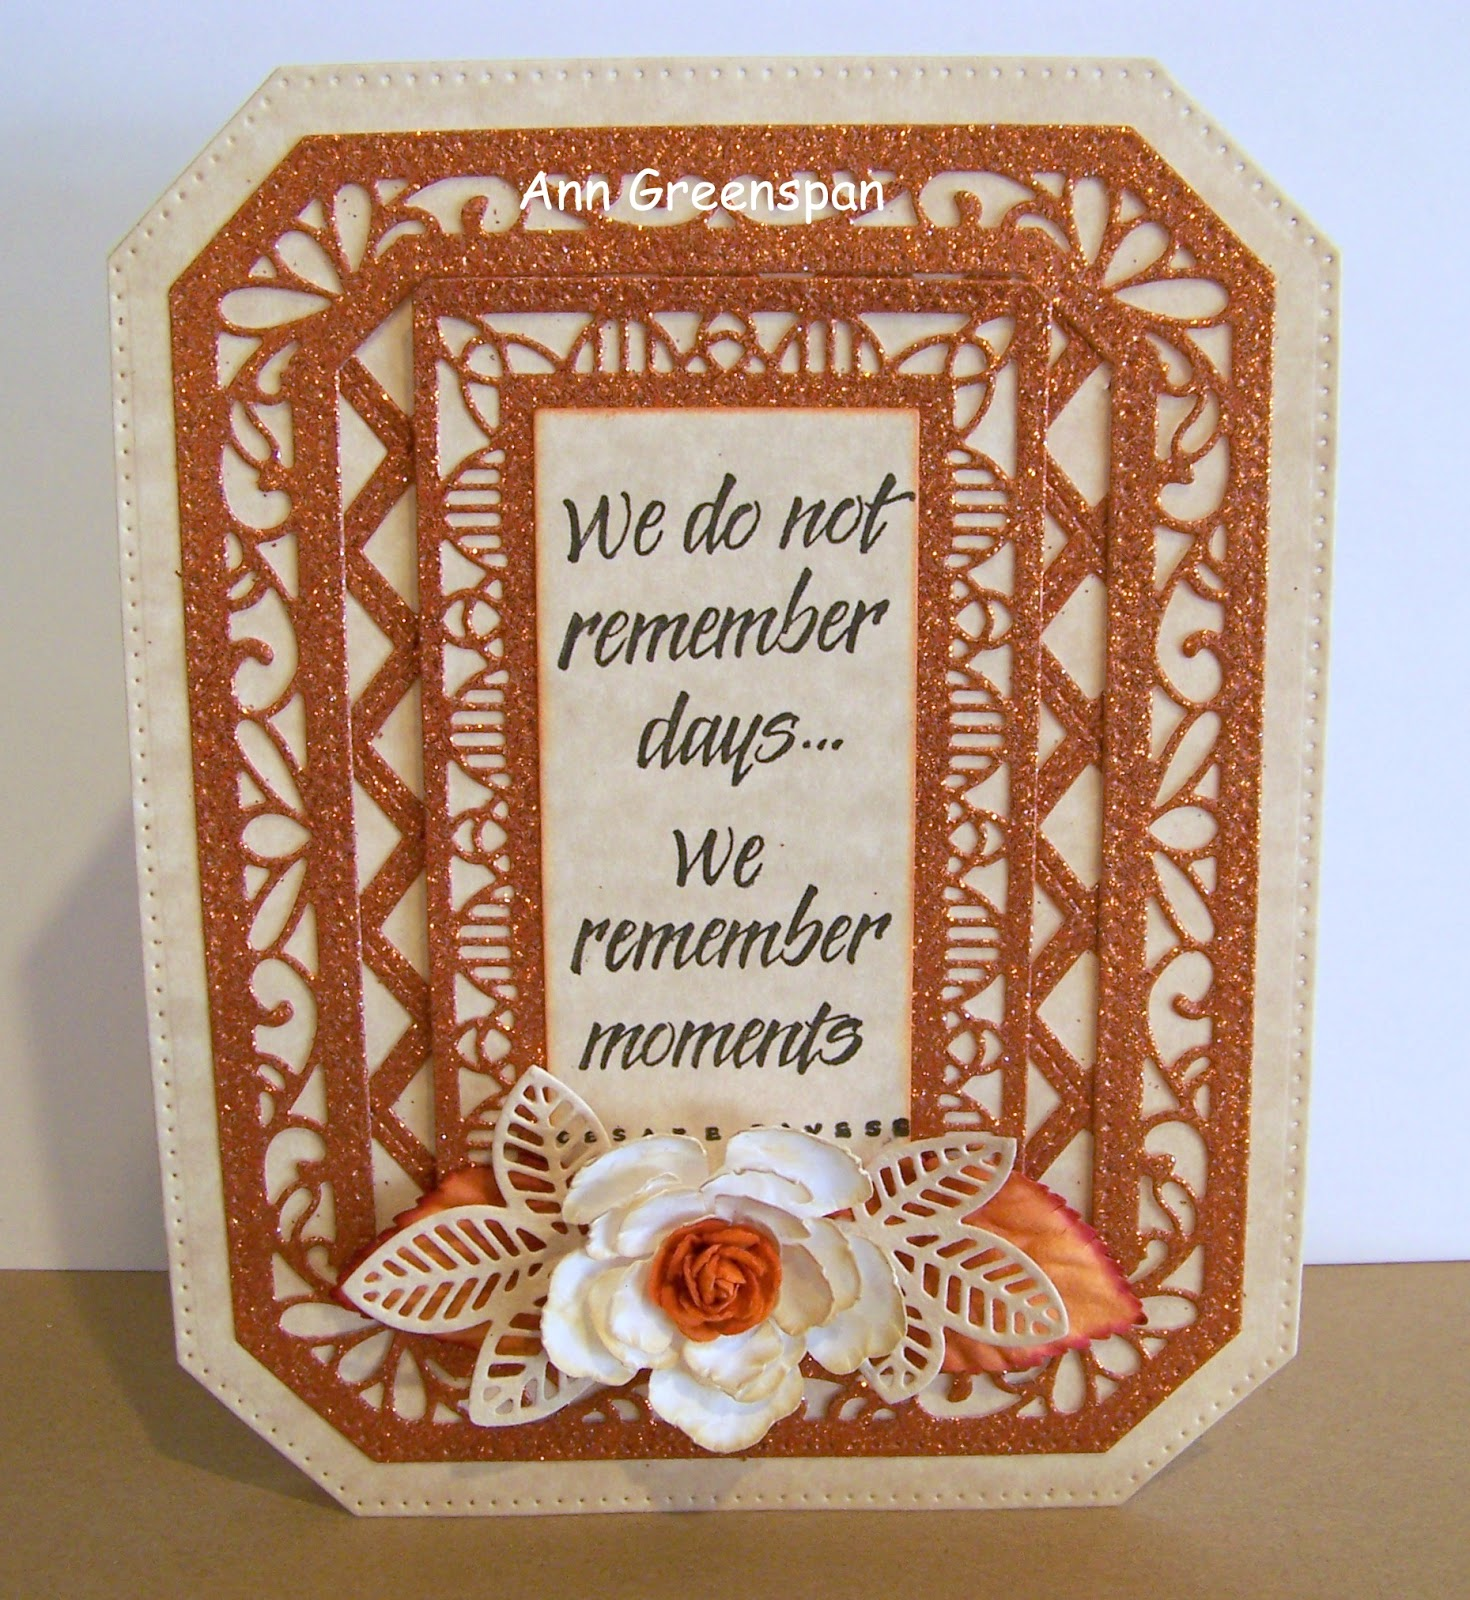 Dies R Us Glittery Ornate Pierced Rectangle Card By Ann